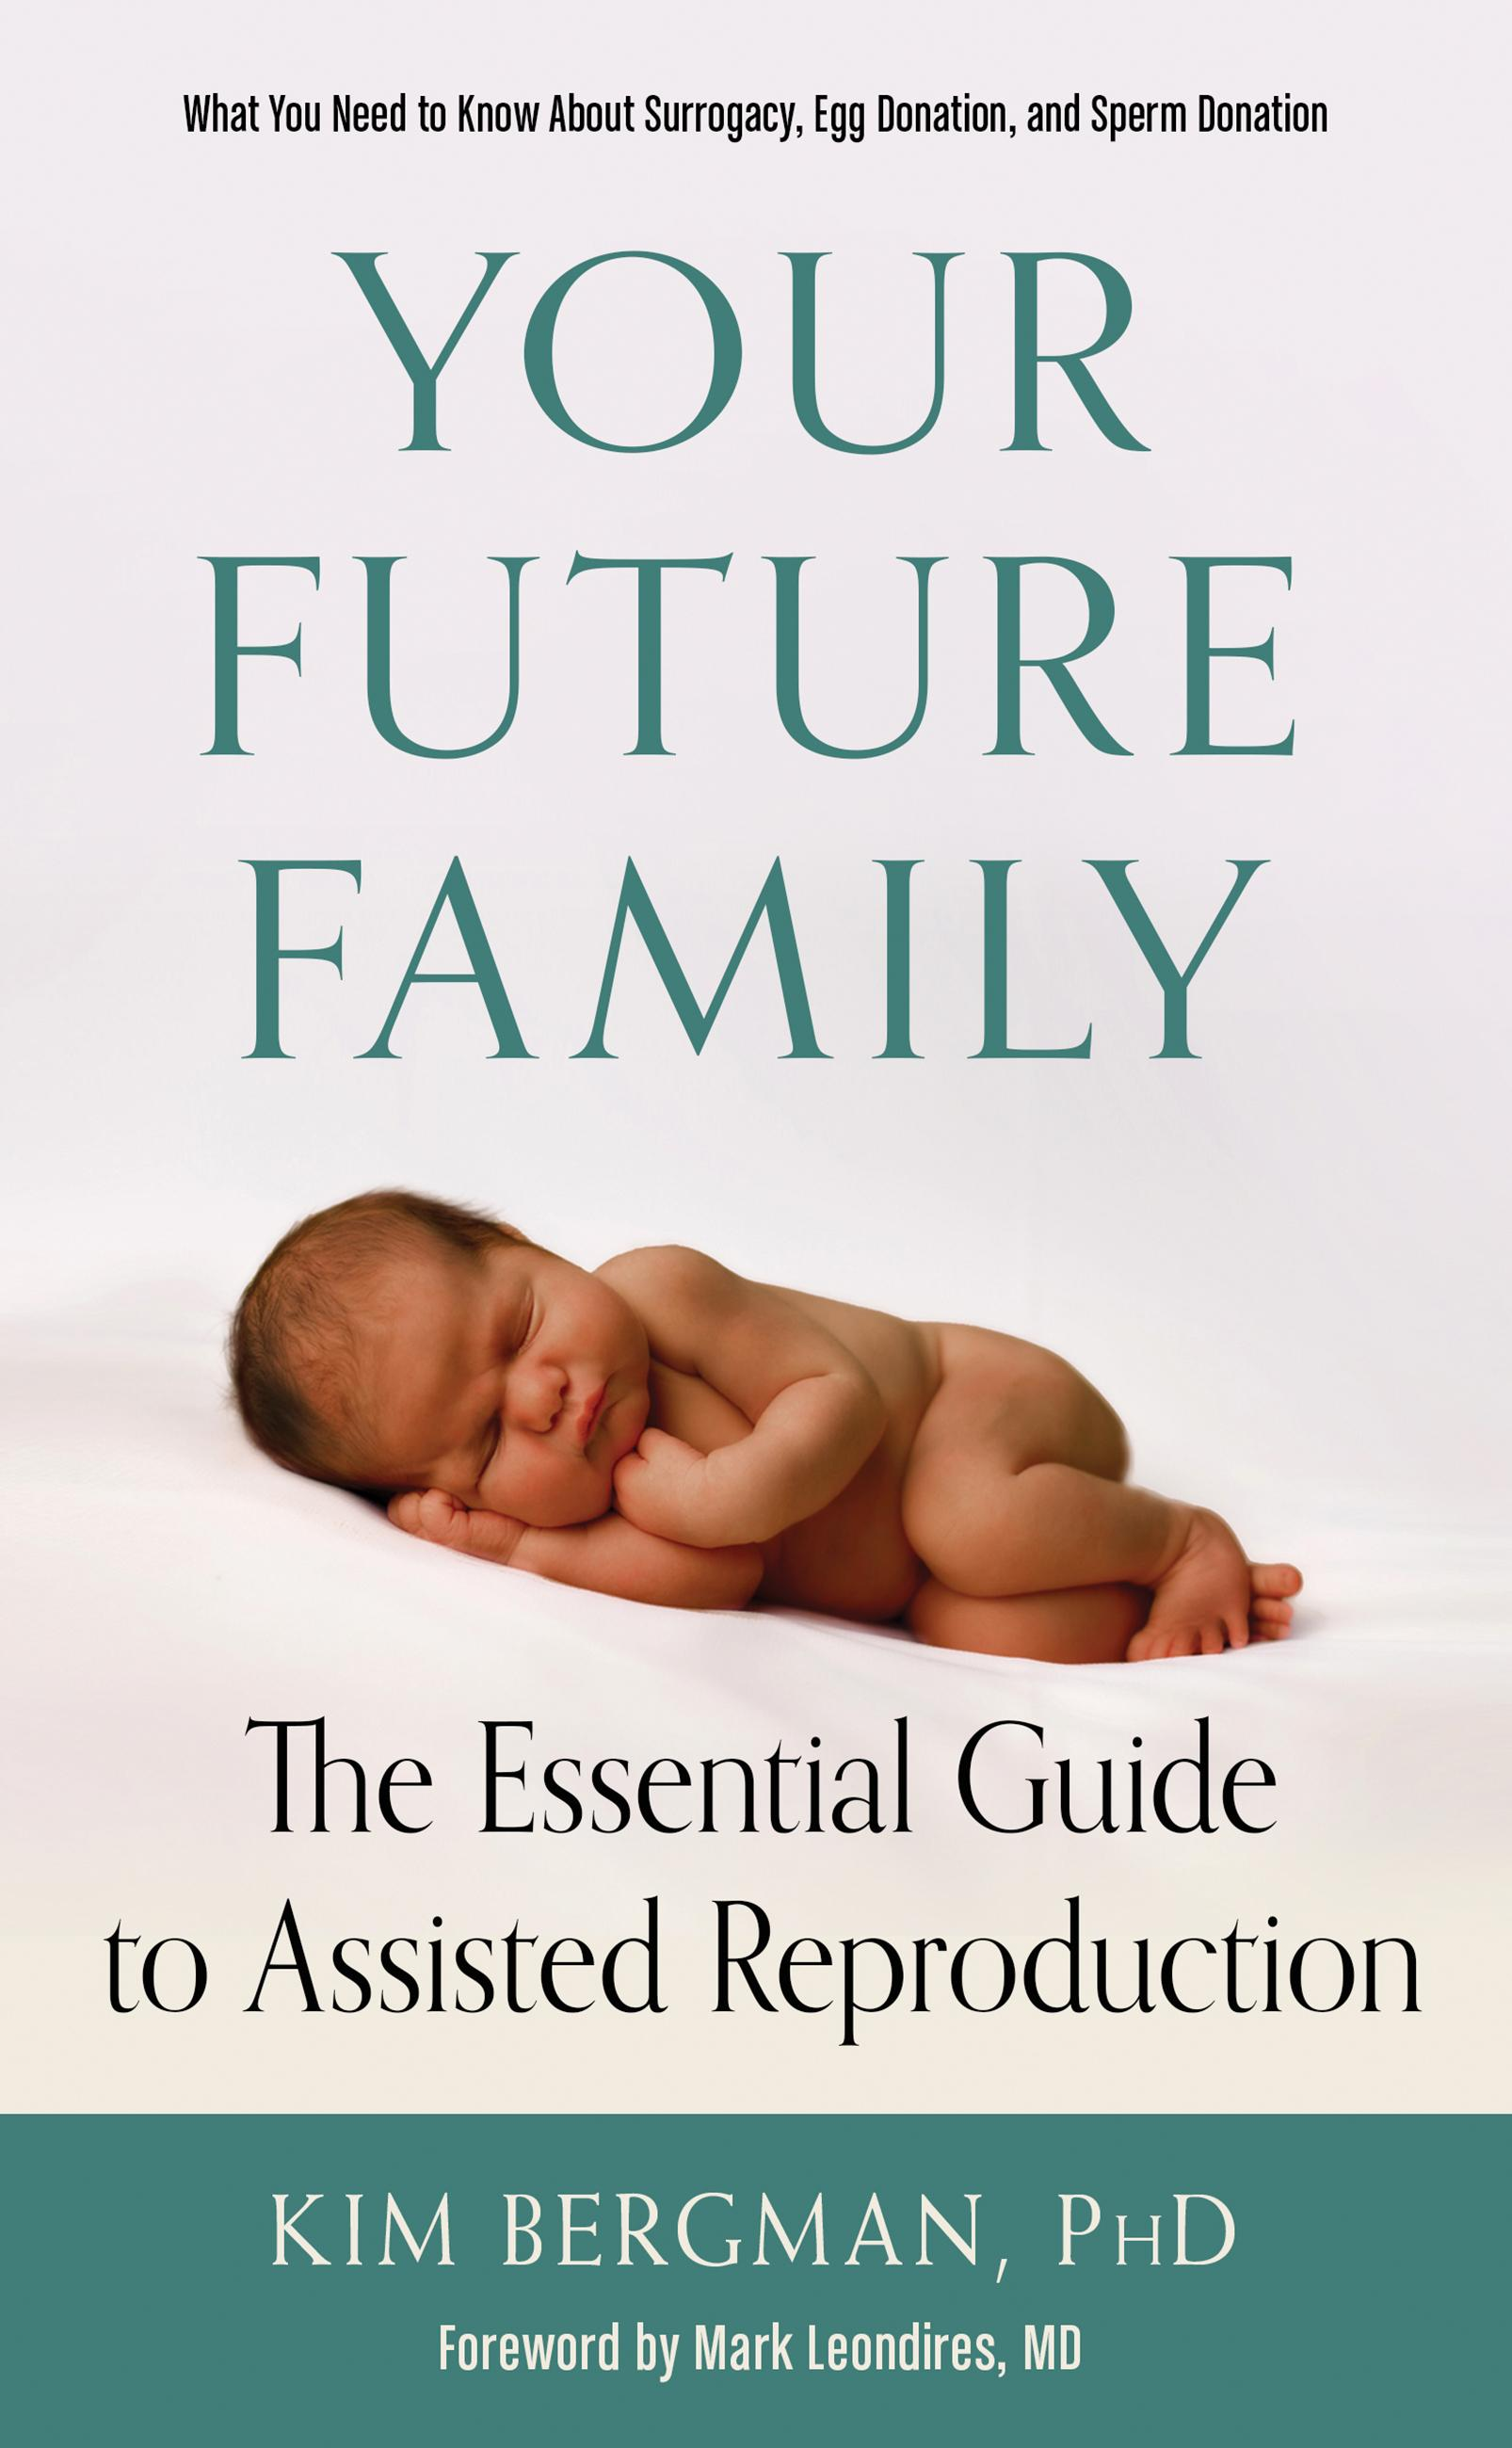 Your Future Family: The Essential Guide to Assisted Reproduction (What You Need to Know About Surrogacy, Egg Donation, and Sperm Donation) by Kim Bergman and Mark Leondires